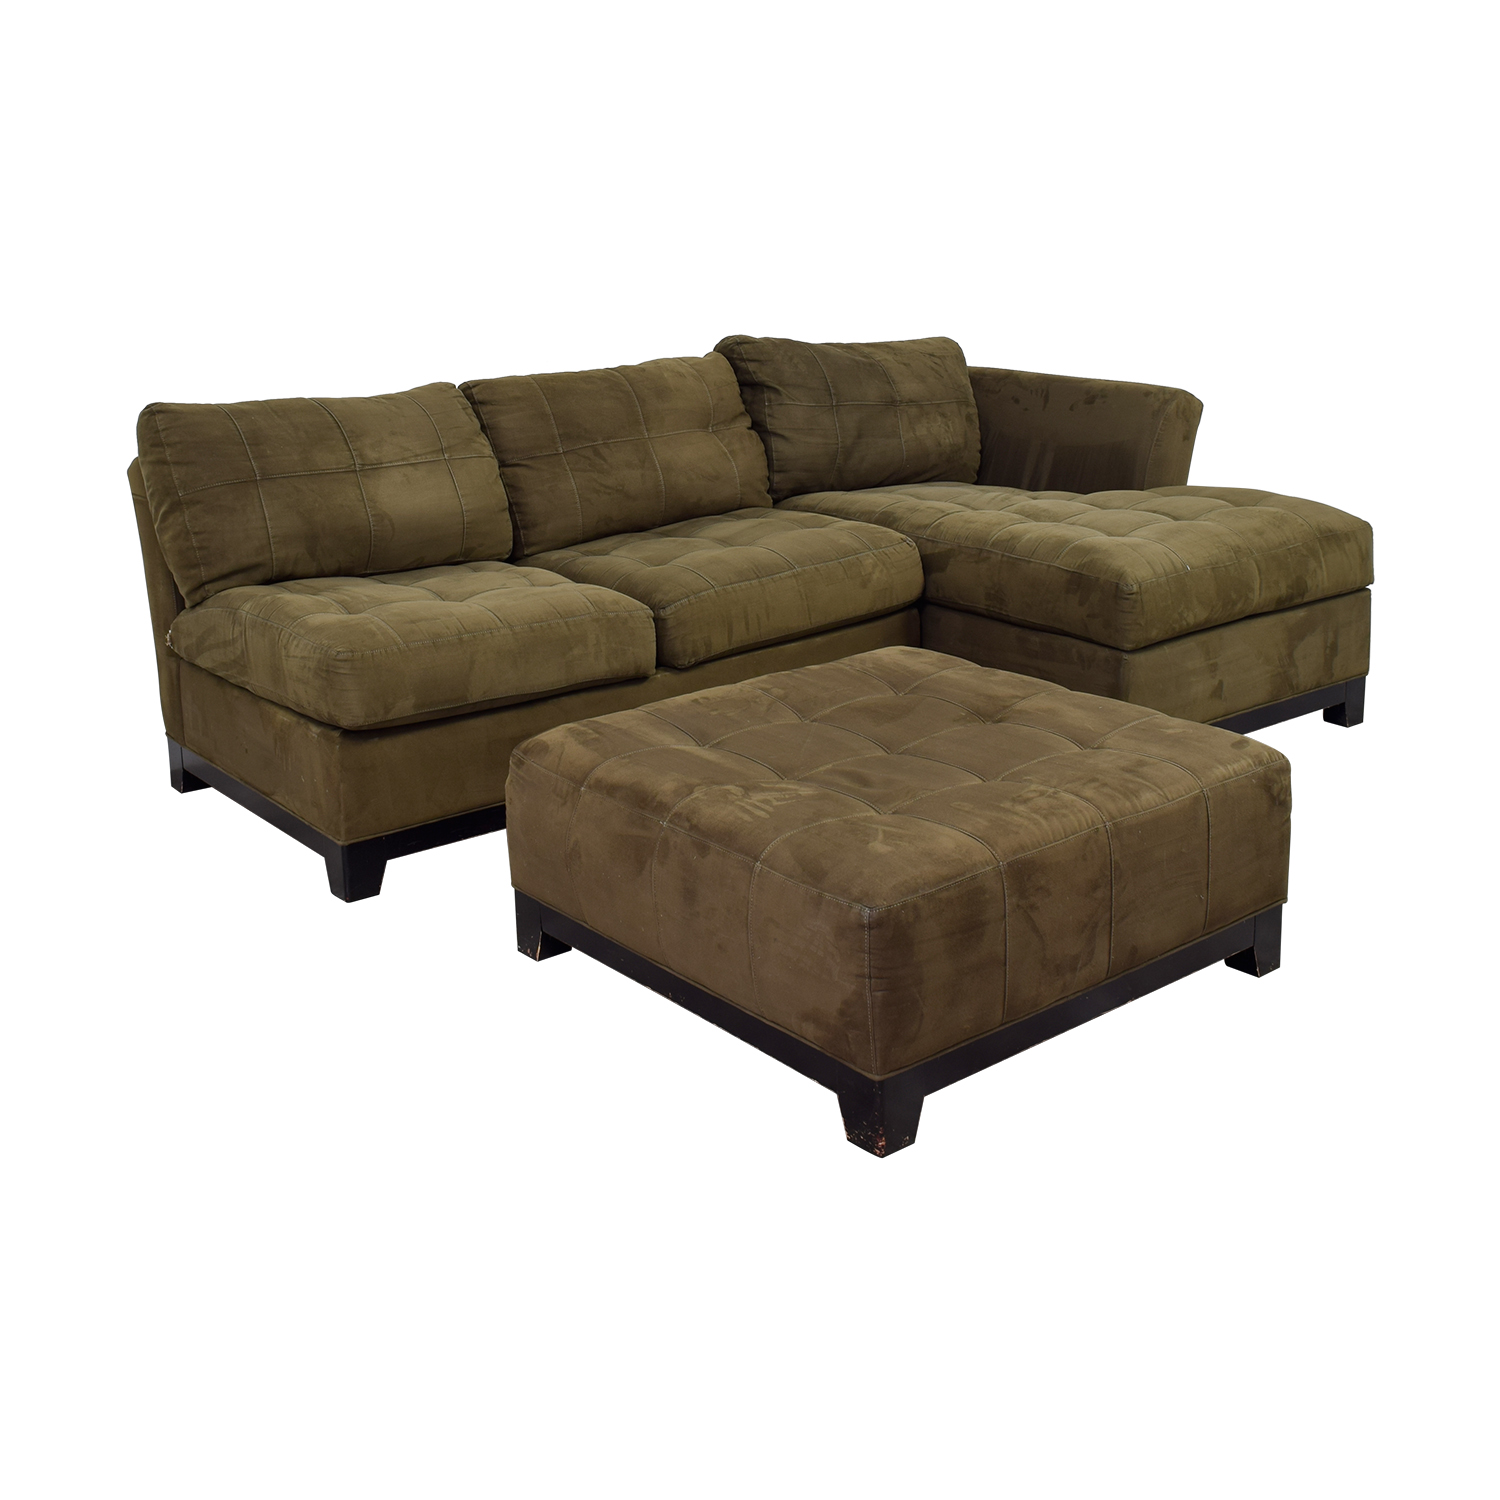 cindy crawford cindy crawford metropolis green chaise sectional with ottoman coupon